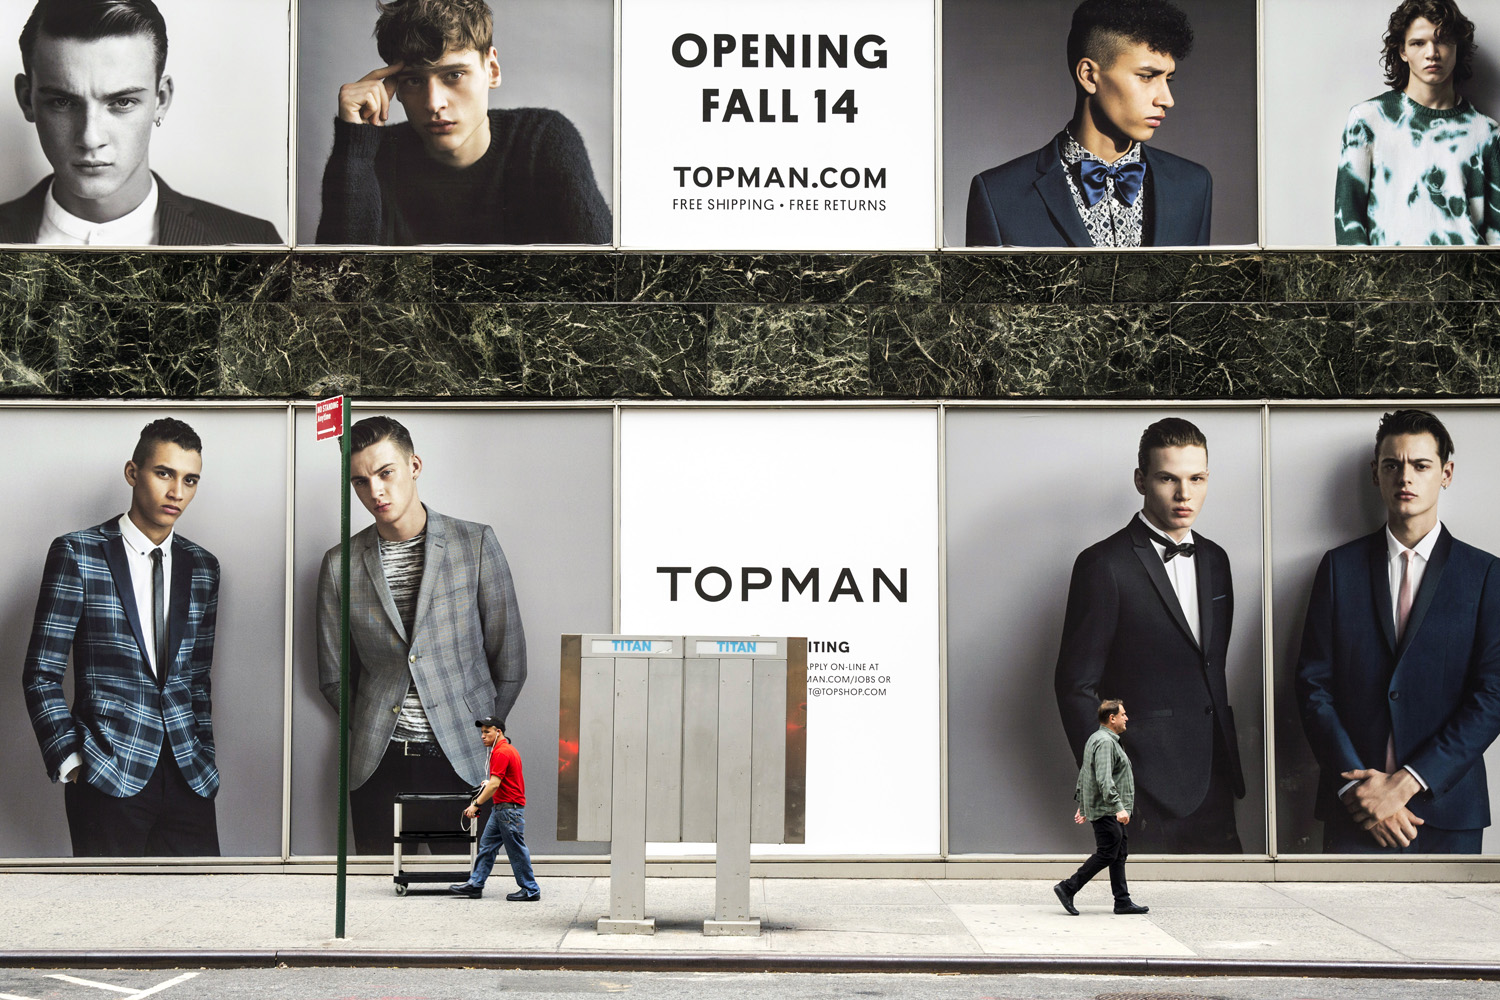 Two men pass by a billboard covering a new Top Shop flagship store on Fifth Avenue, New York, Apr 15, 2014.